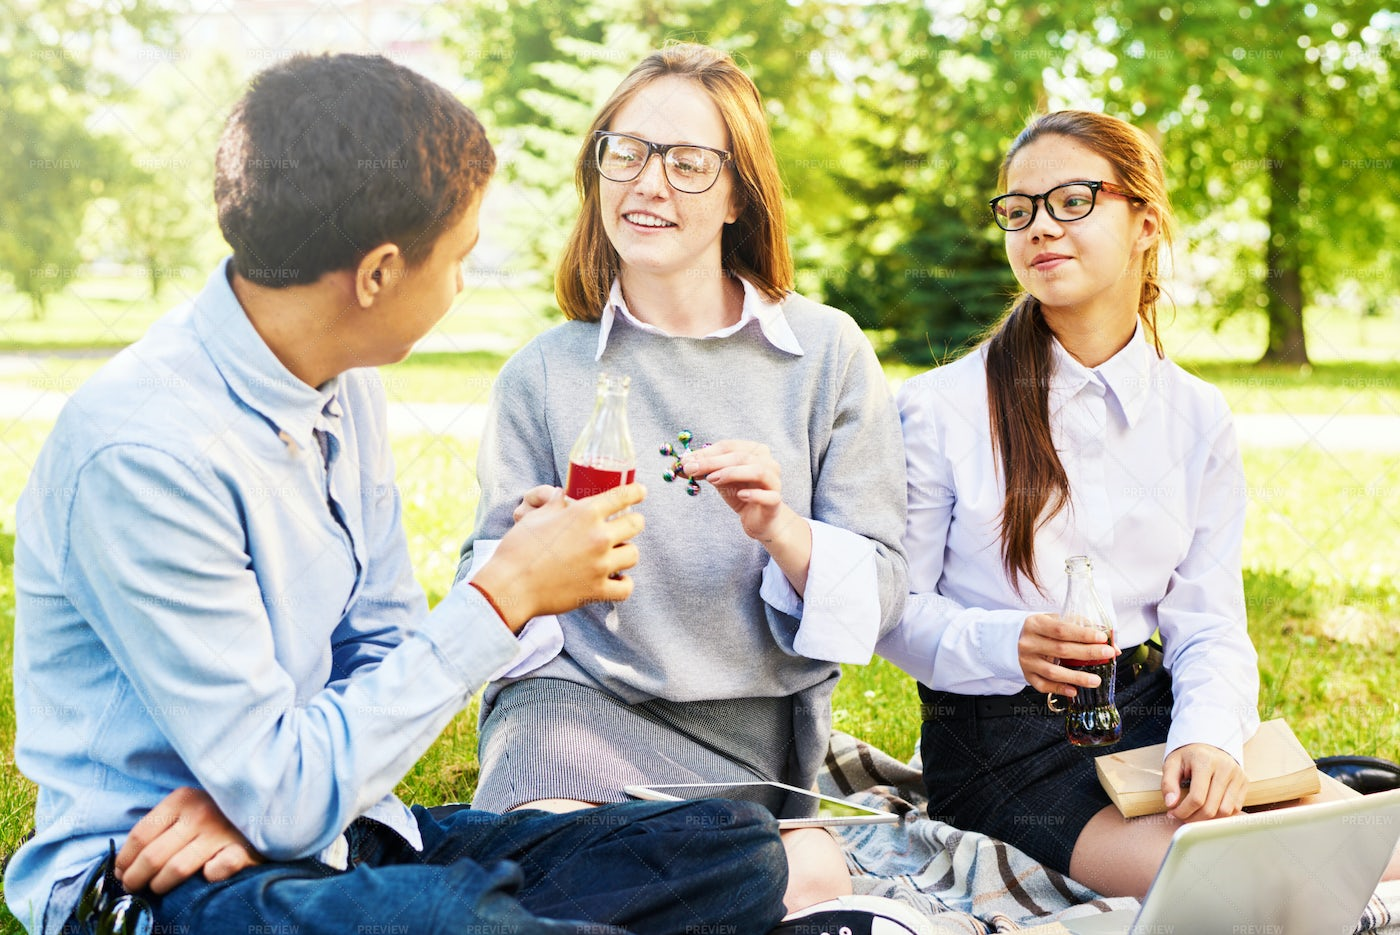 School Friends Chatting Outdoors: Stock Photos